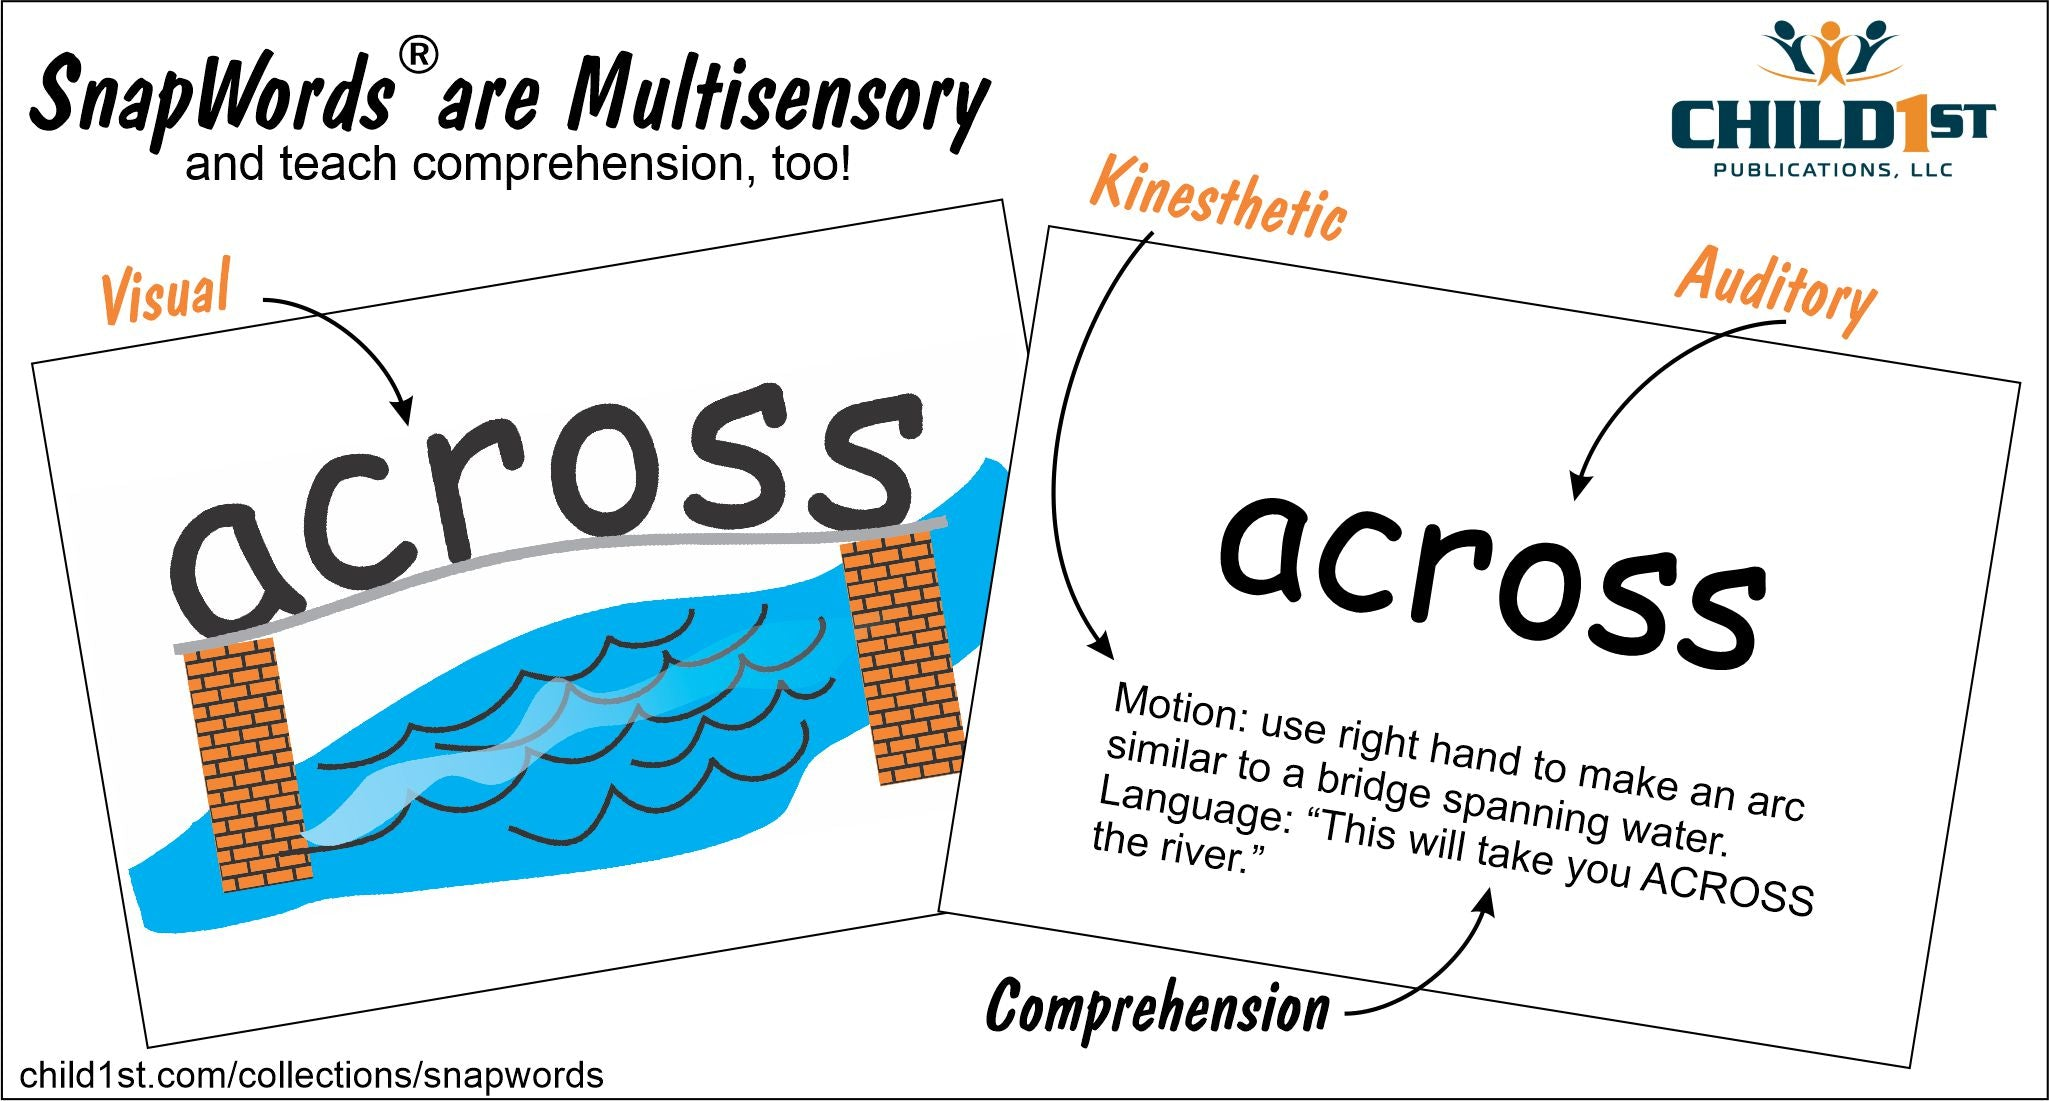 SnapWords are Multisensory